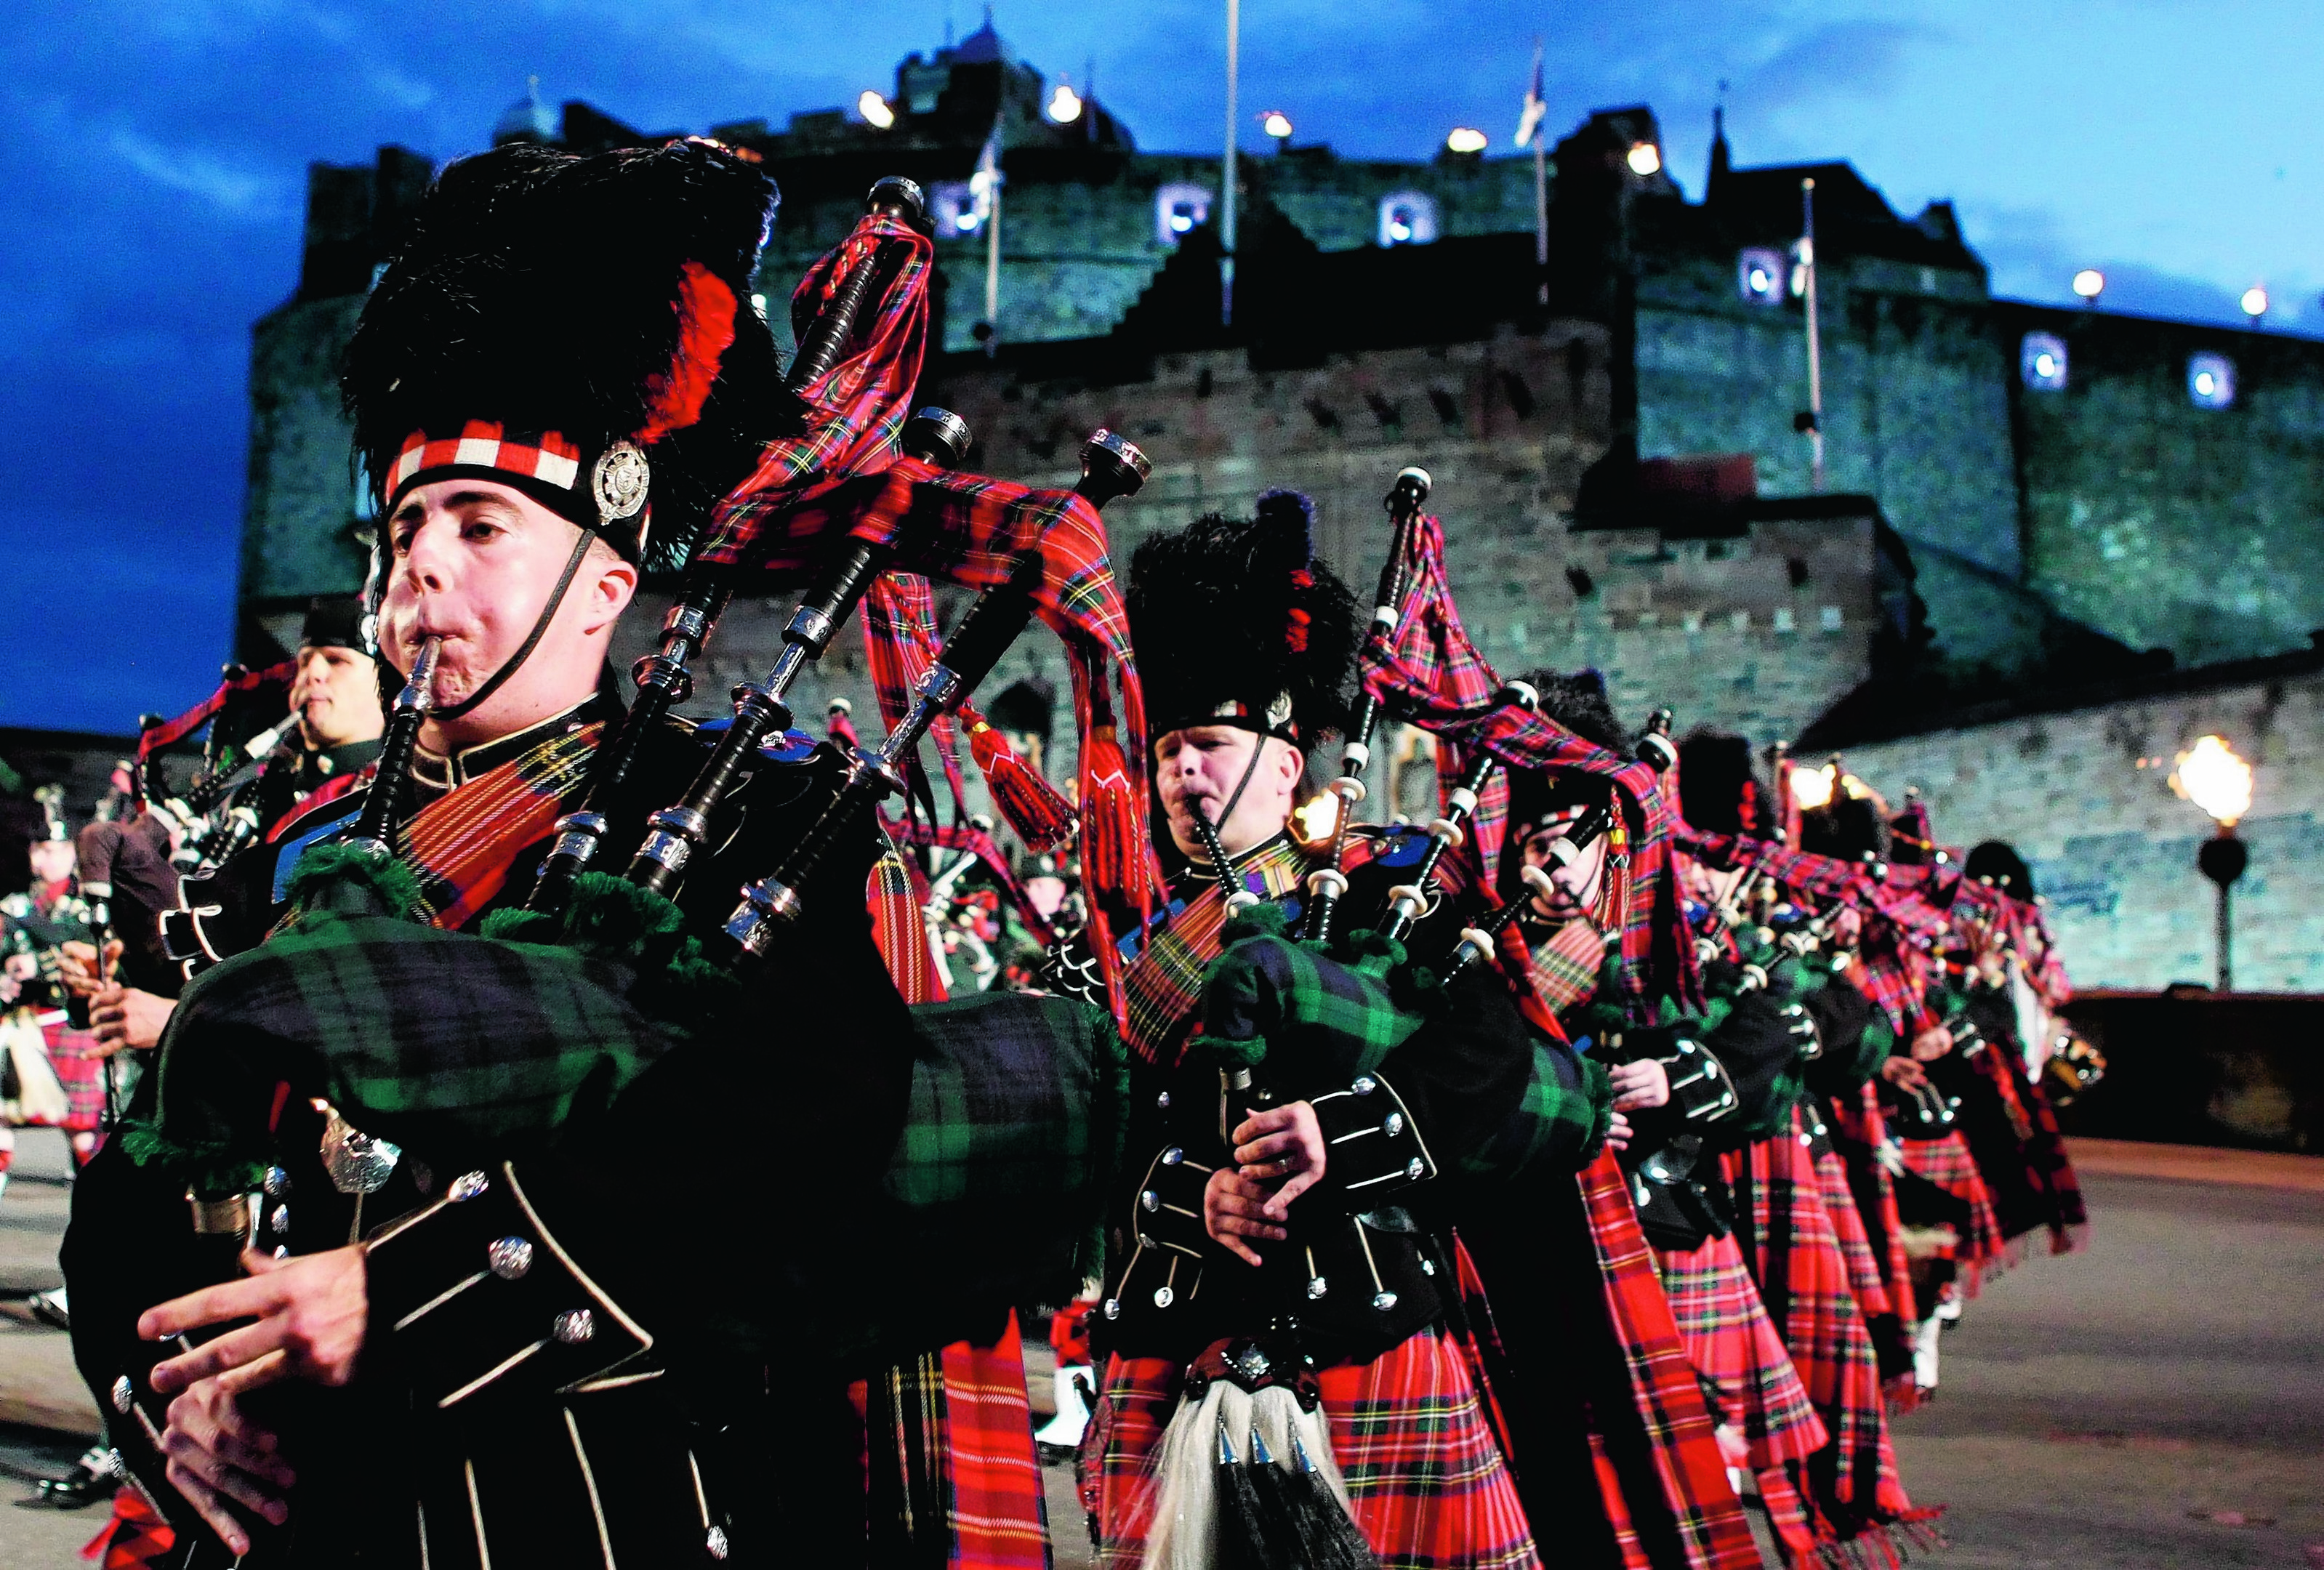 The Massed Pipes and Drums during the Edinburgh Military Tattoo dress rehearsal at Edinburgh Castle